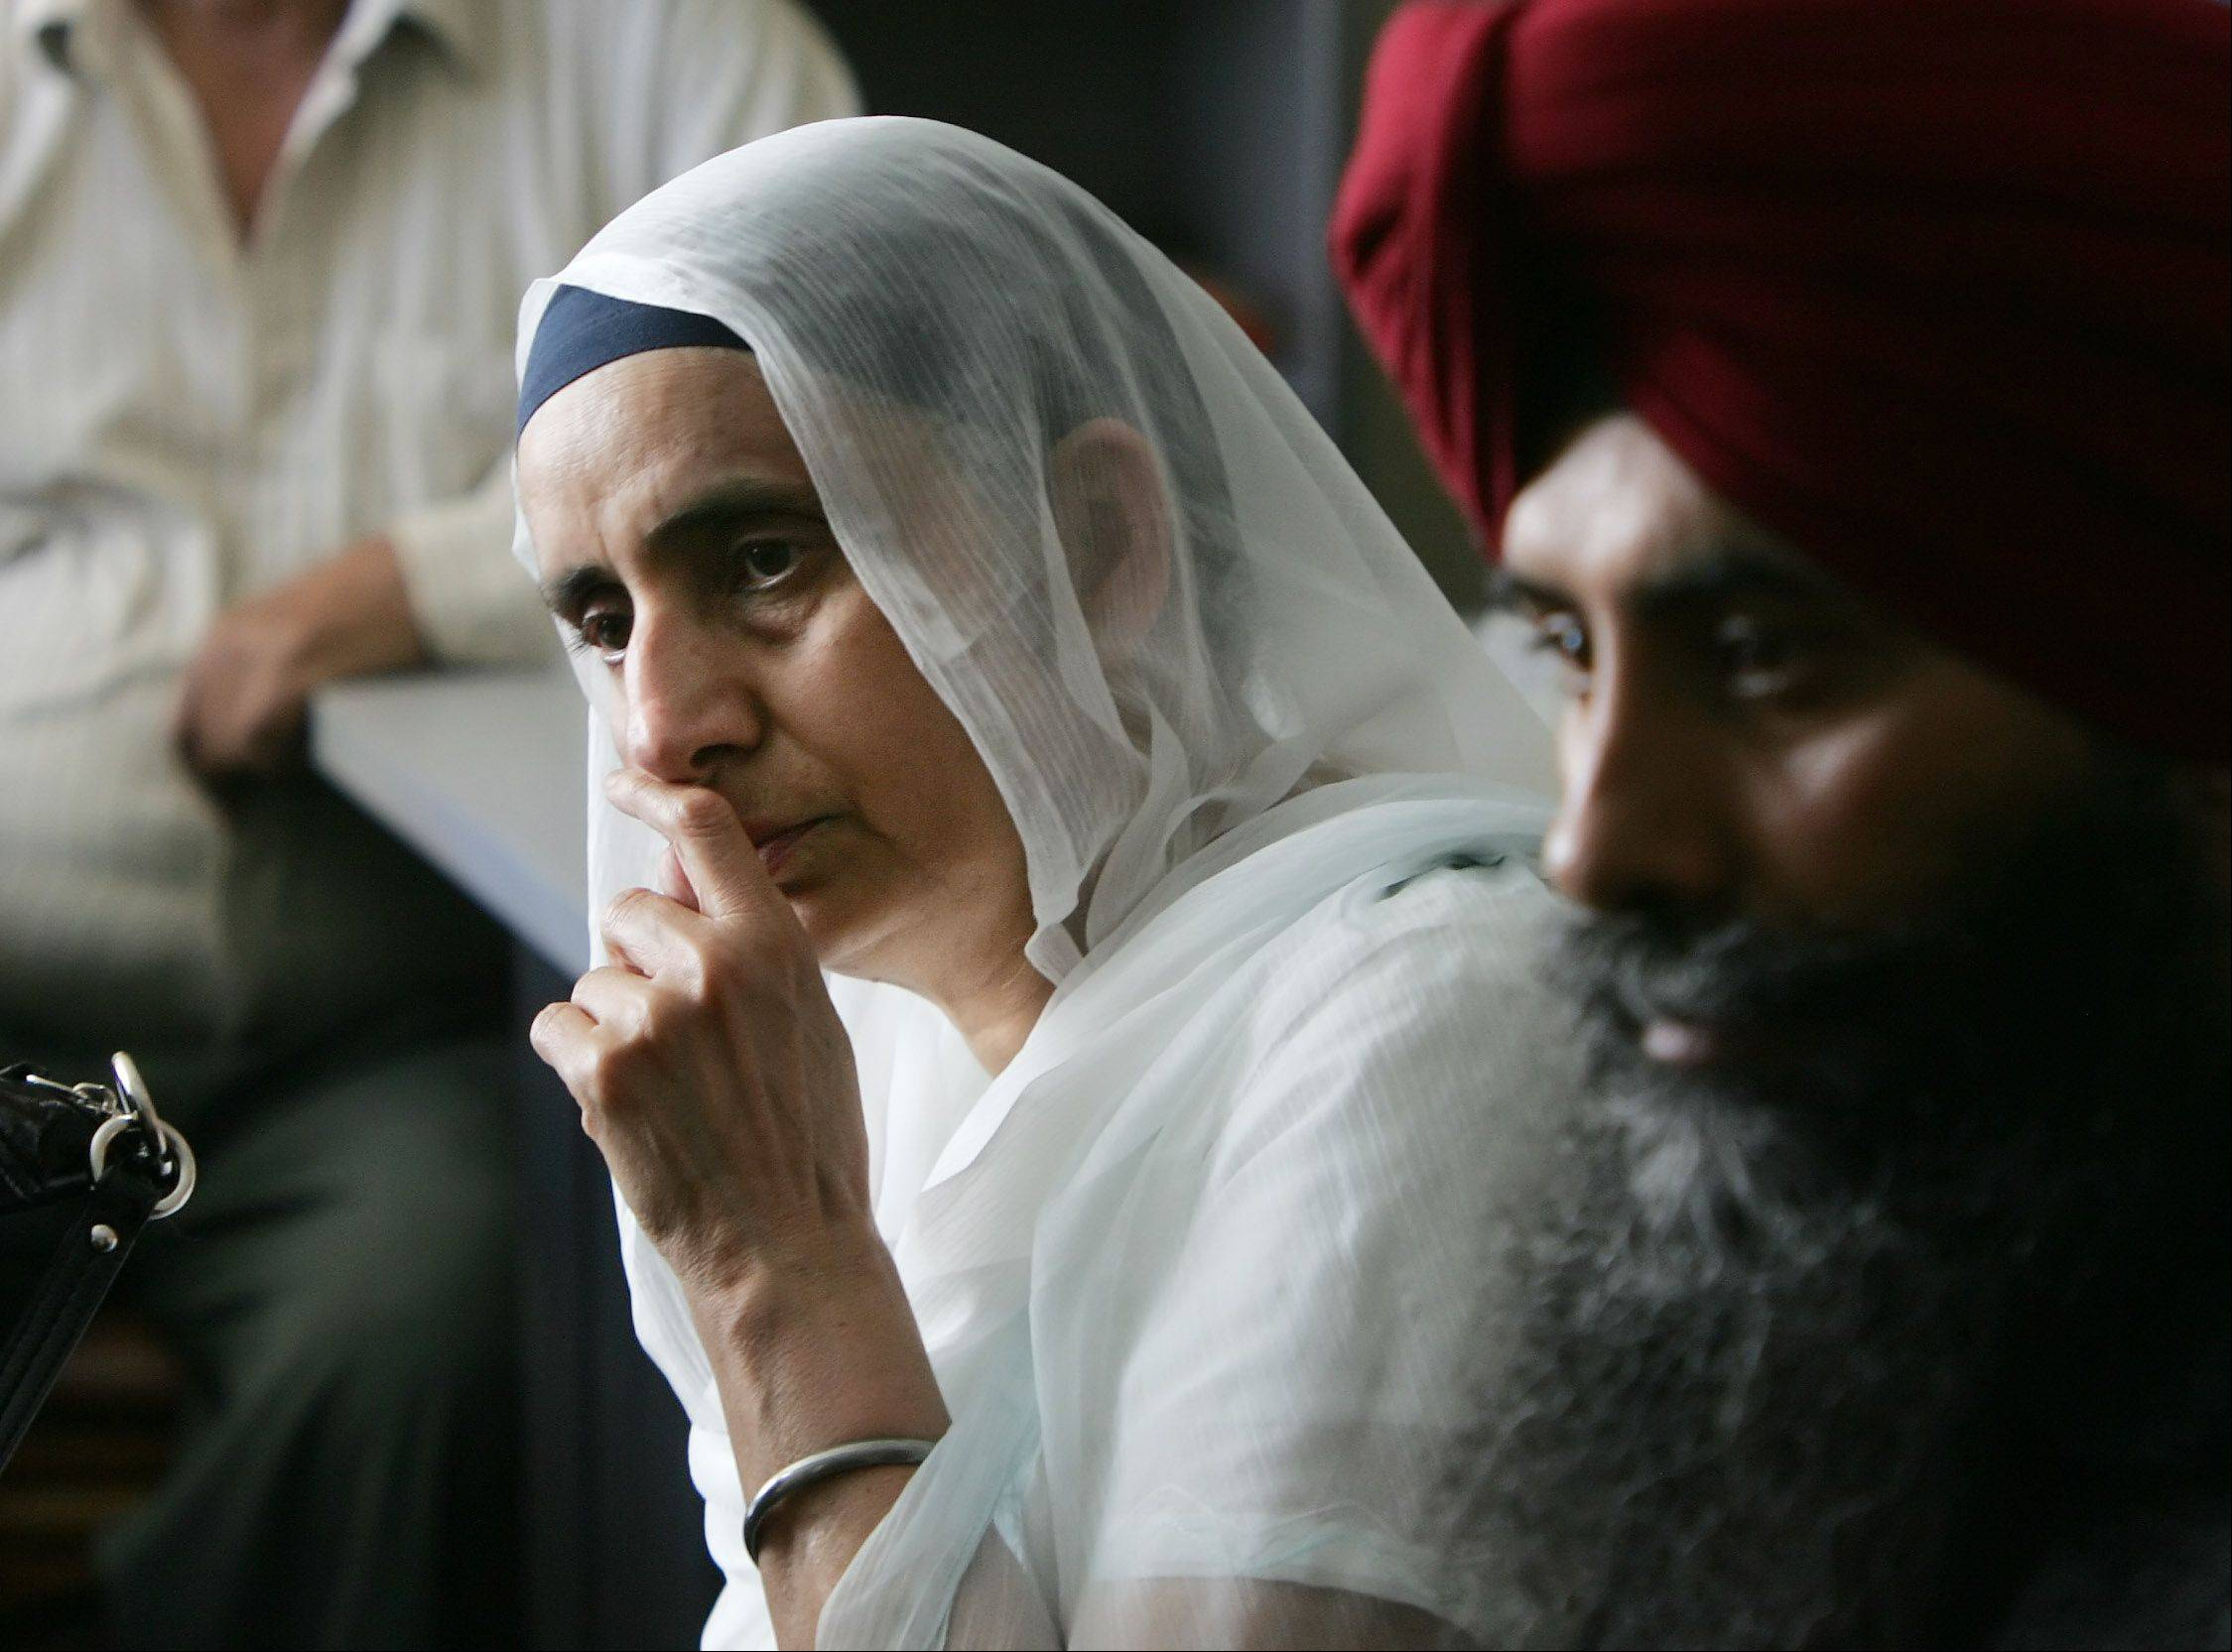 President Sukhdev K. Ghuman and other Sikh members of the Gurudawara Sikh Religious Society in Palatine watch news of the shooting at a Sikh temple Sunday near Milwaukee.